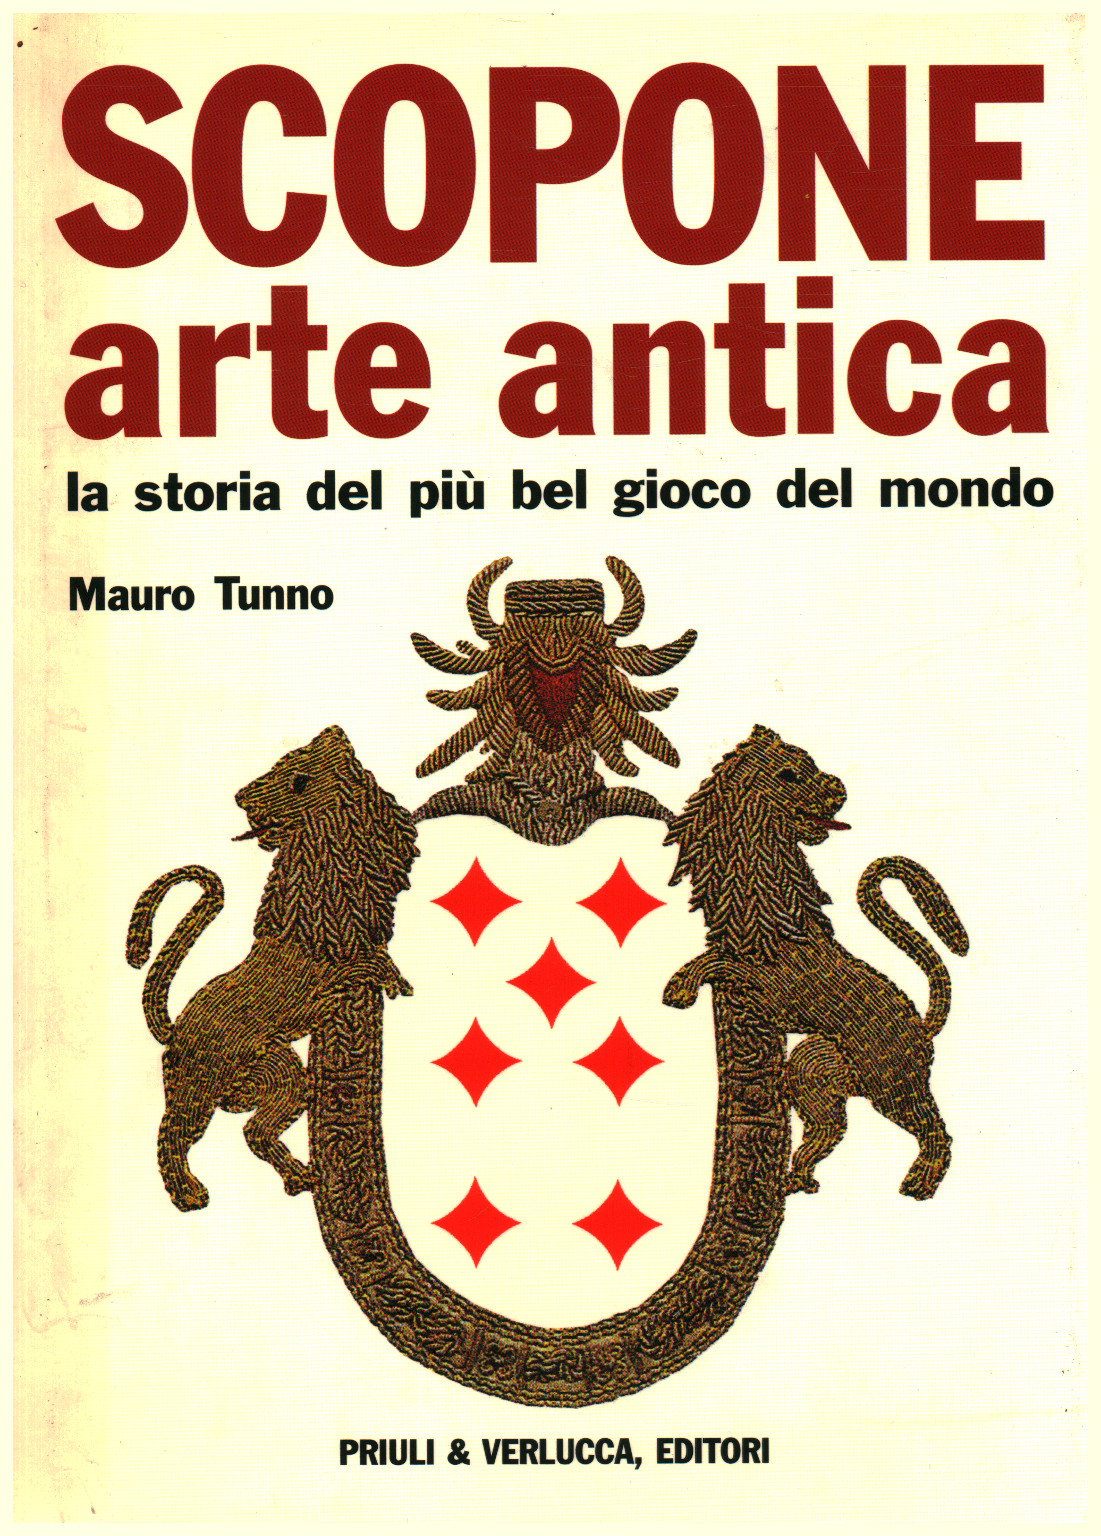 Scopone arte antica the history of the most beautiful game d's.a.